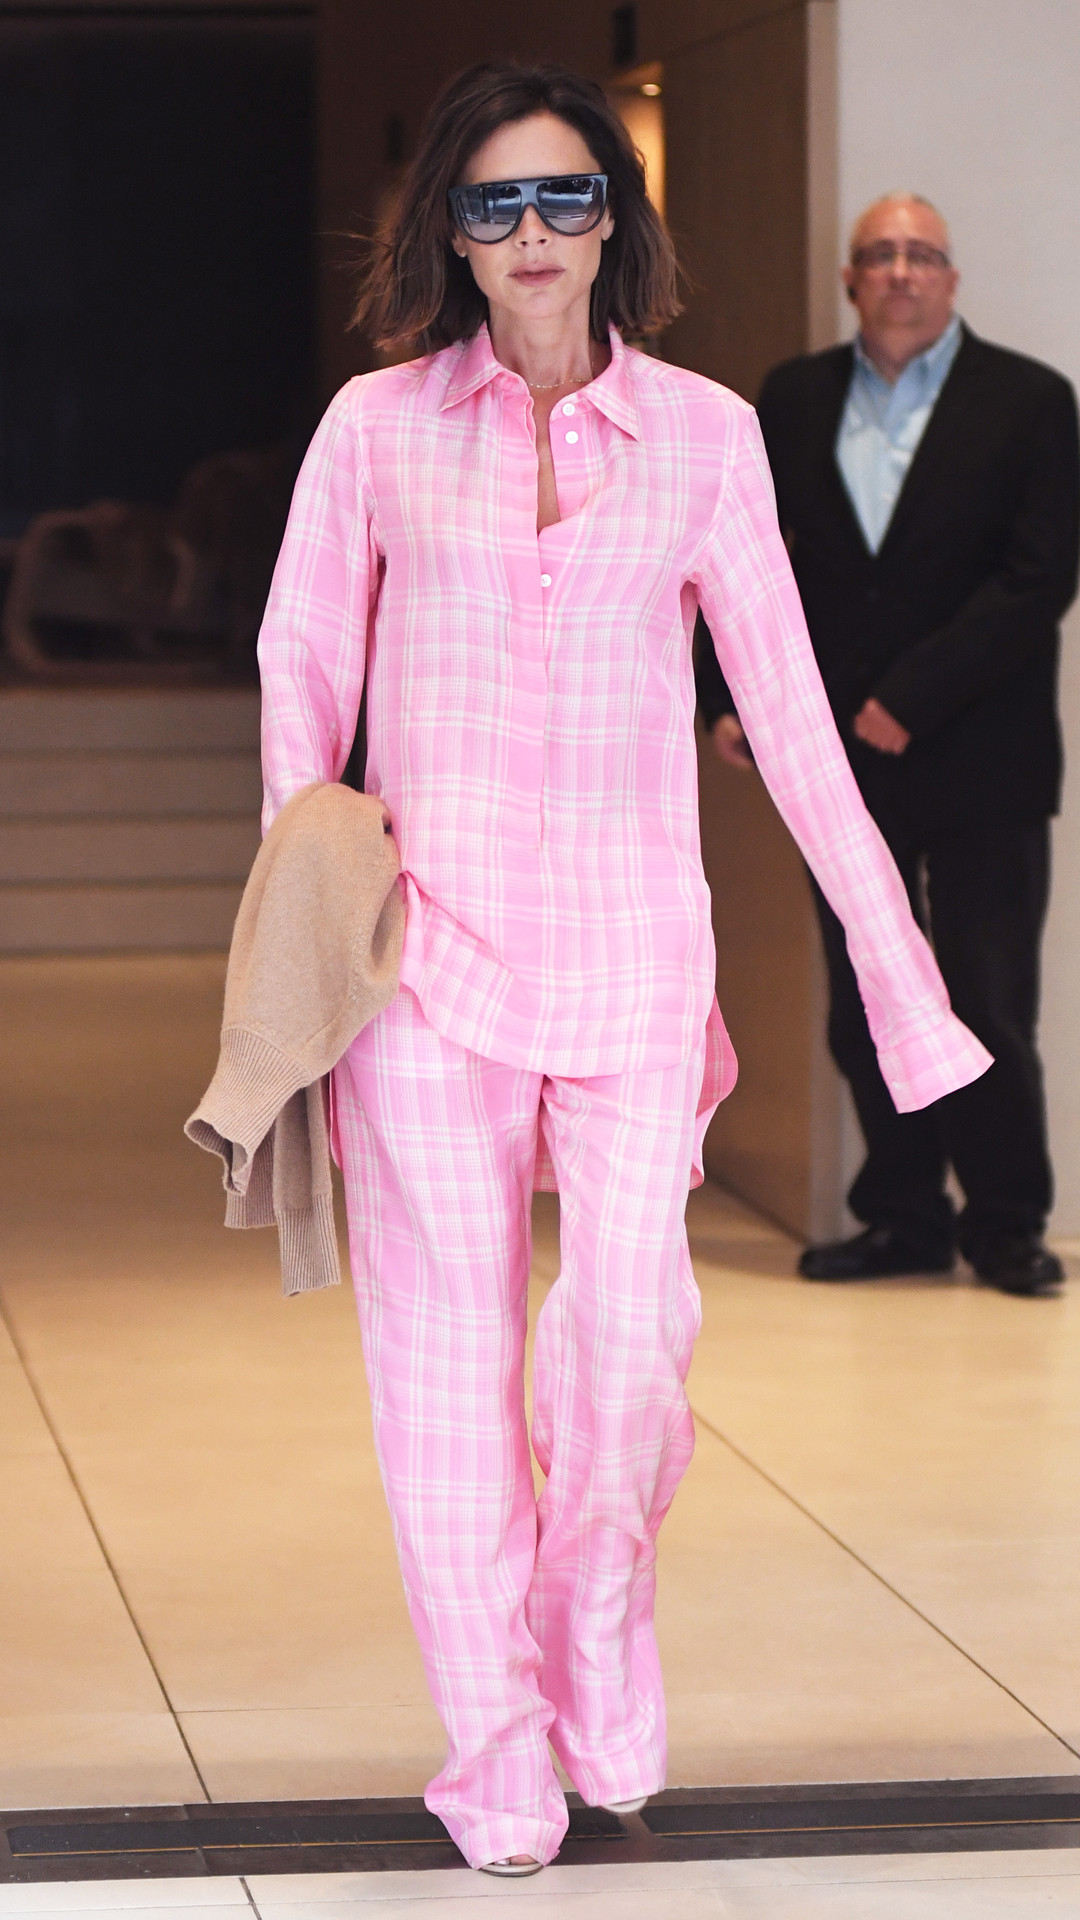 So...Did Victoria Beckham Just Wear Pajamas in Public? | E! News UK